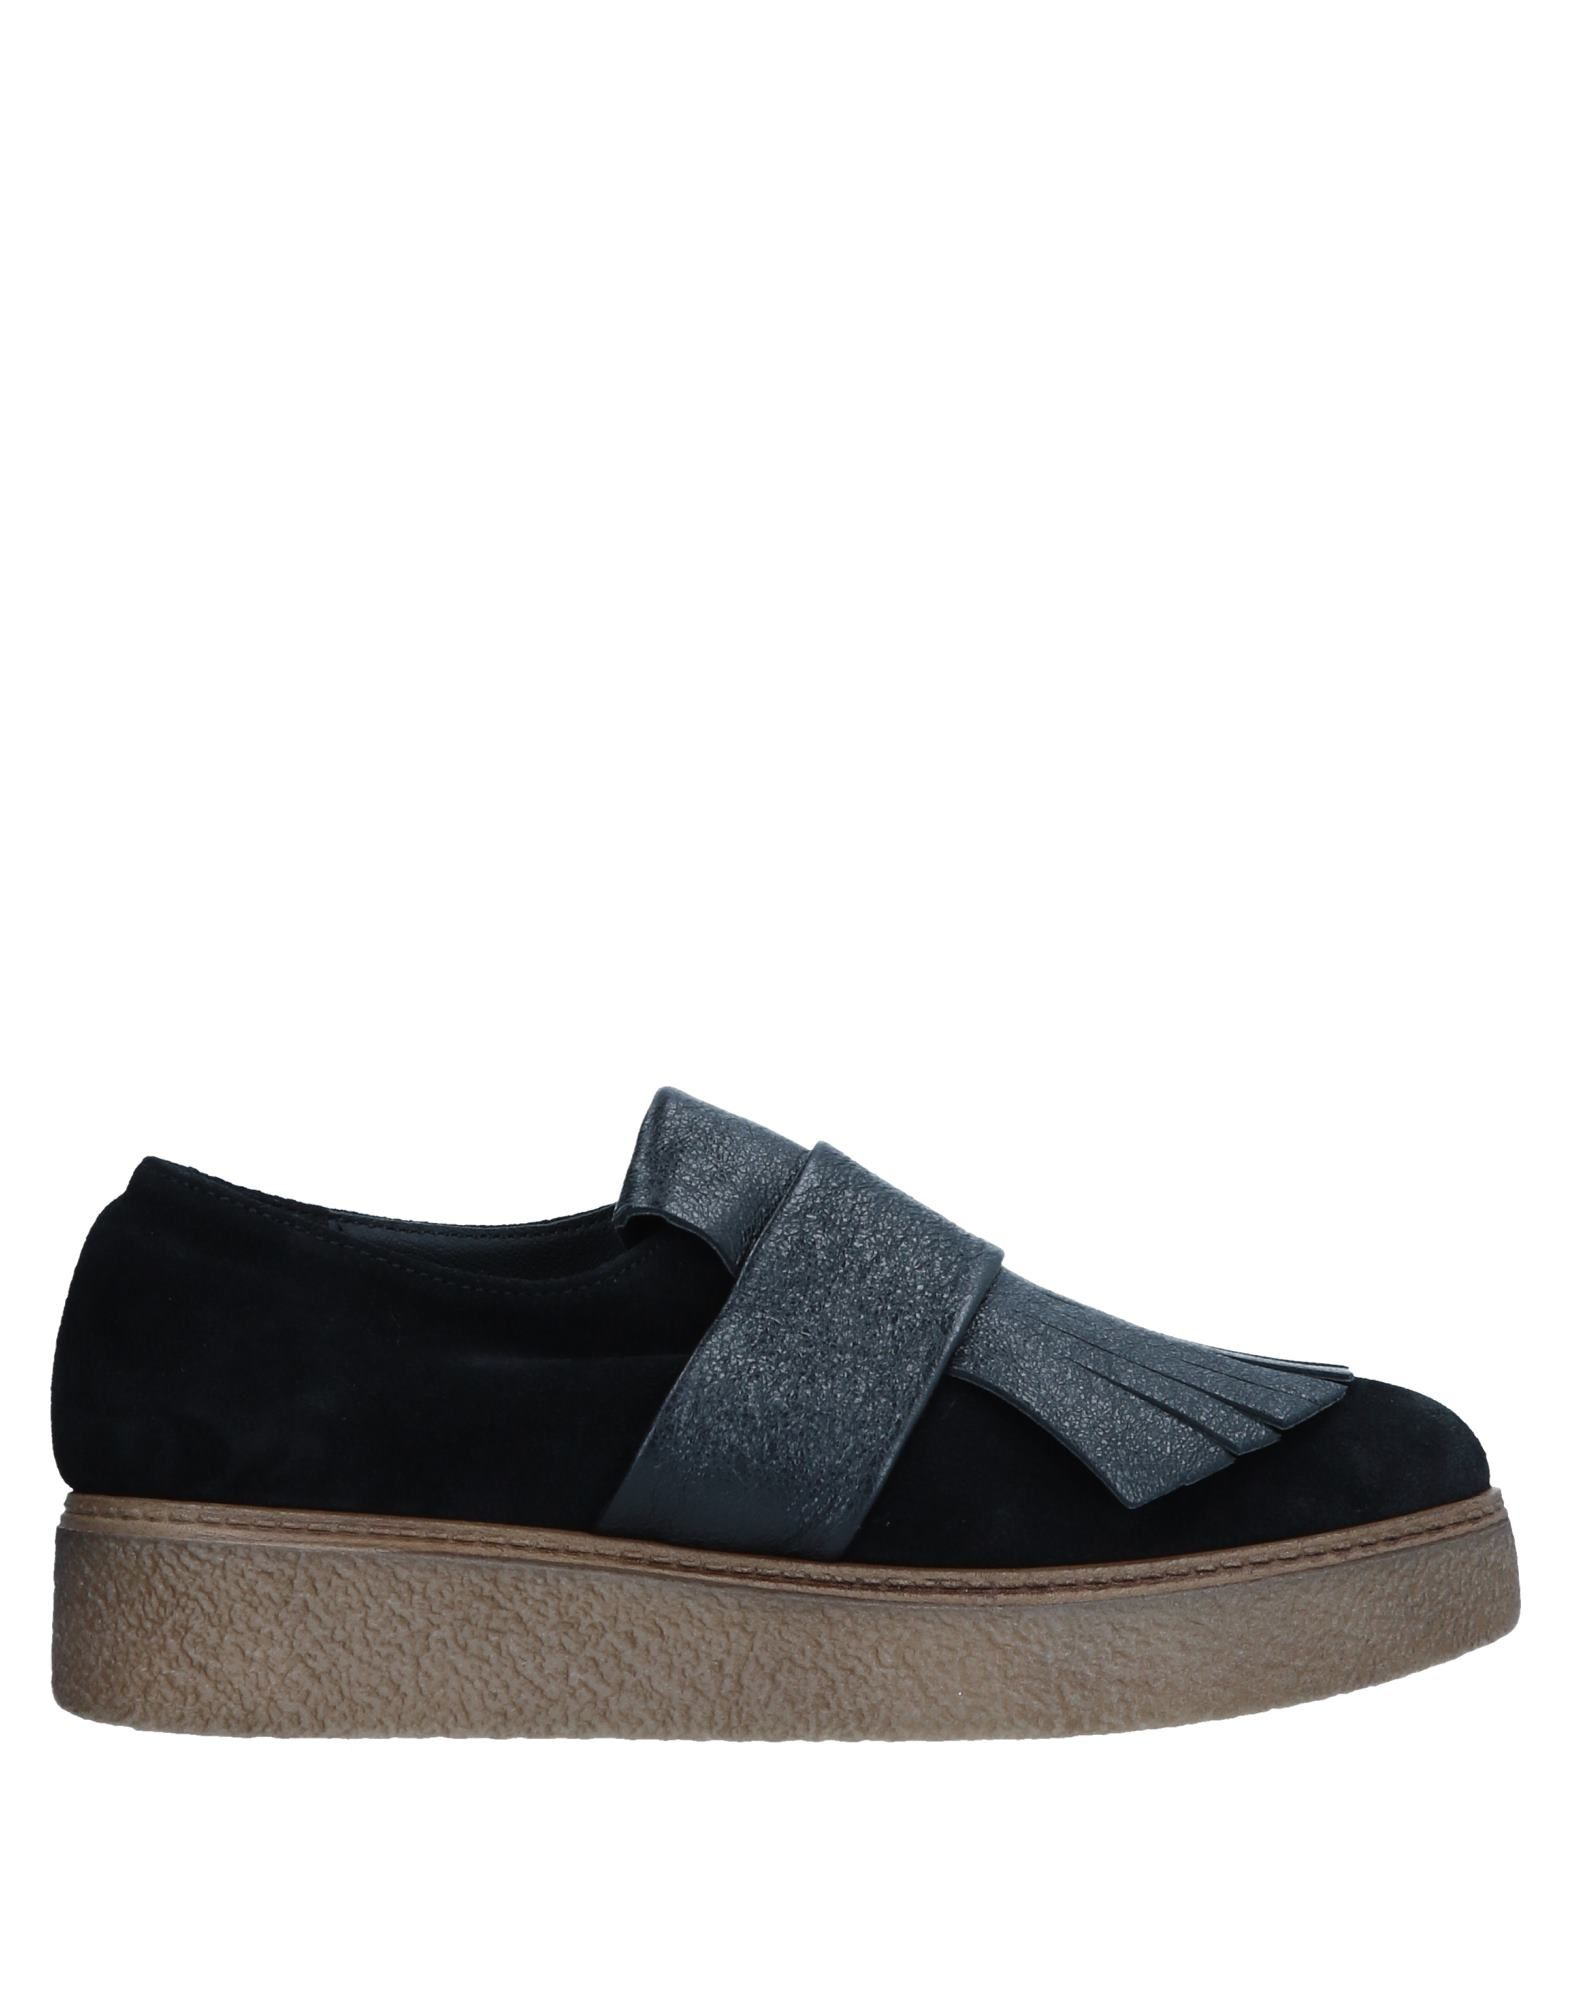 Juli Pascal Paris Loafers - Women Juli Pascal Paris United Loafers online on  United Paris Kingdom - 11556093OF 1ea222